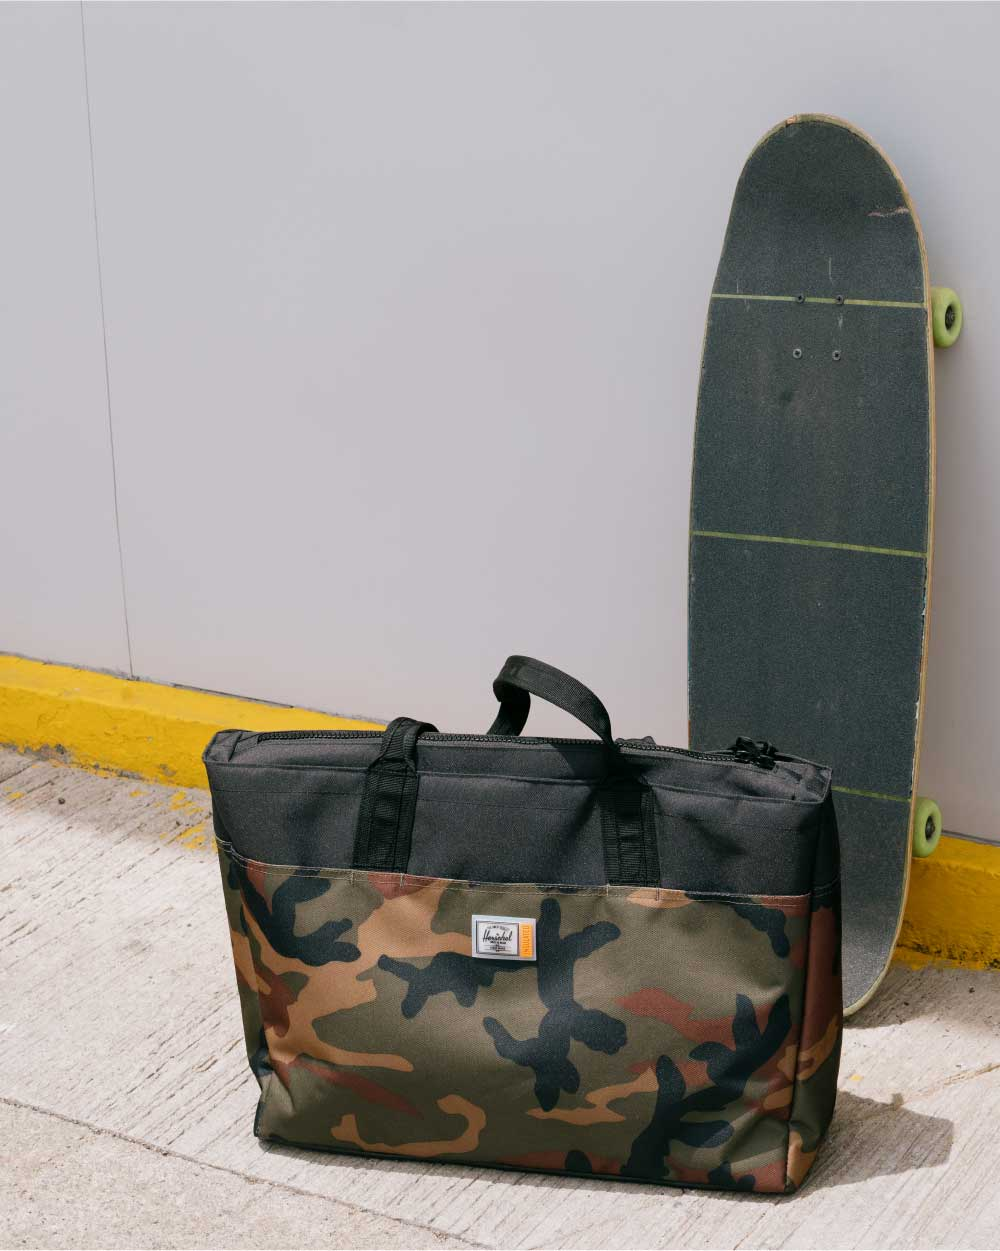 a black/camo insulated alexander zip tote sits in front of a skateboarde leaning against a wall